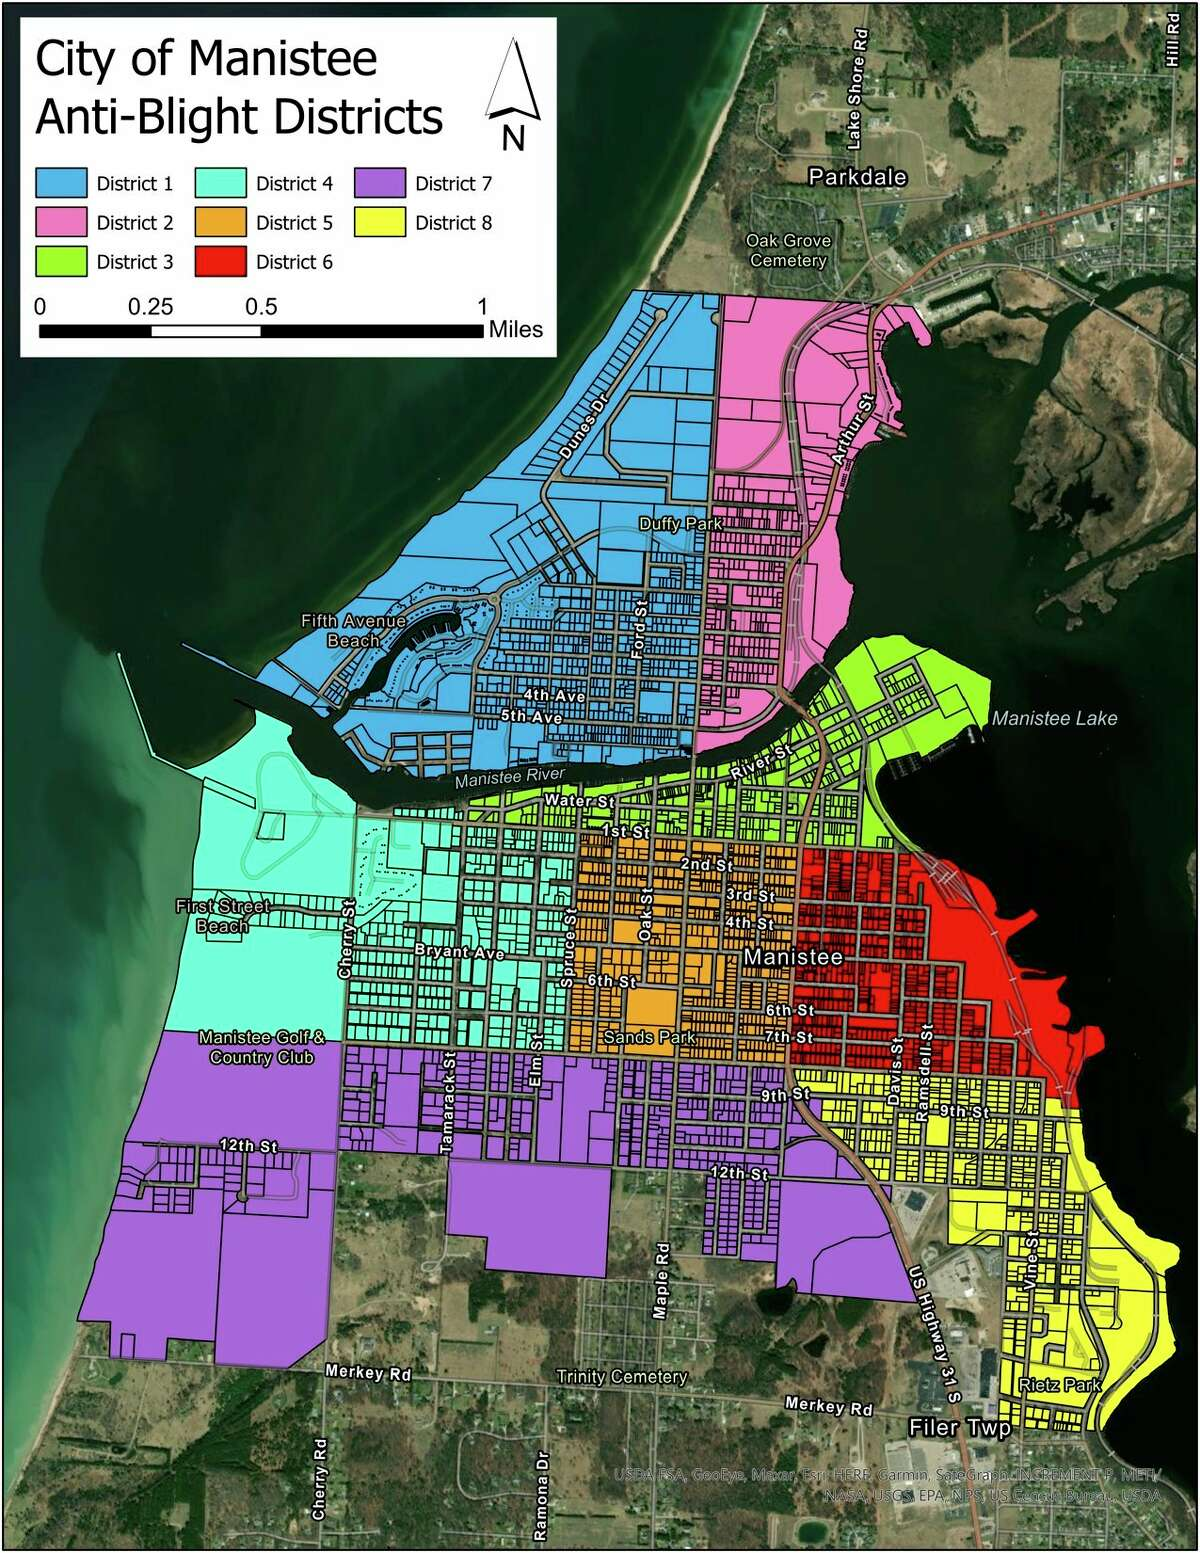 The City Manistee's blight ordinance amendment takes effect on Friday and then the city will be heading into peak enforcement for blight. The city is divided into eight districts which are each assigned to a Manistee City Police officer for enforcement and a point of contact. (Courtesy image)